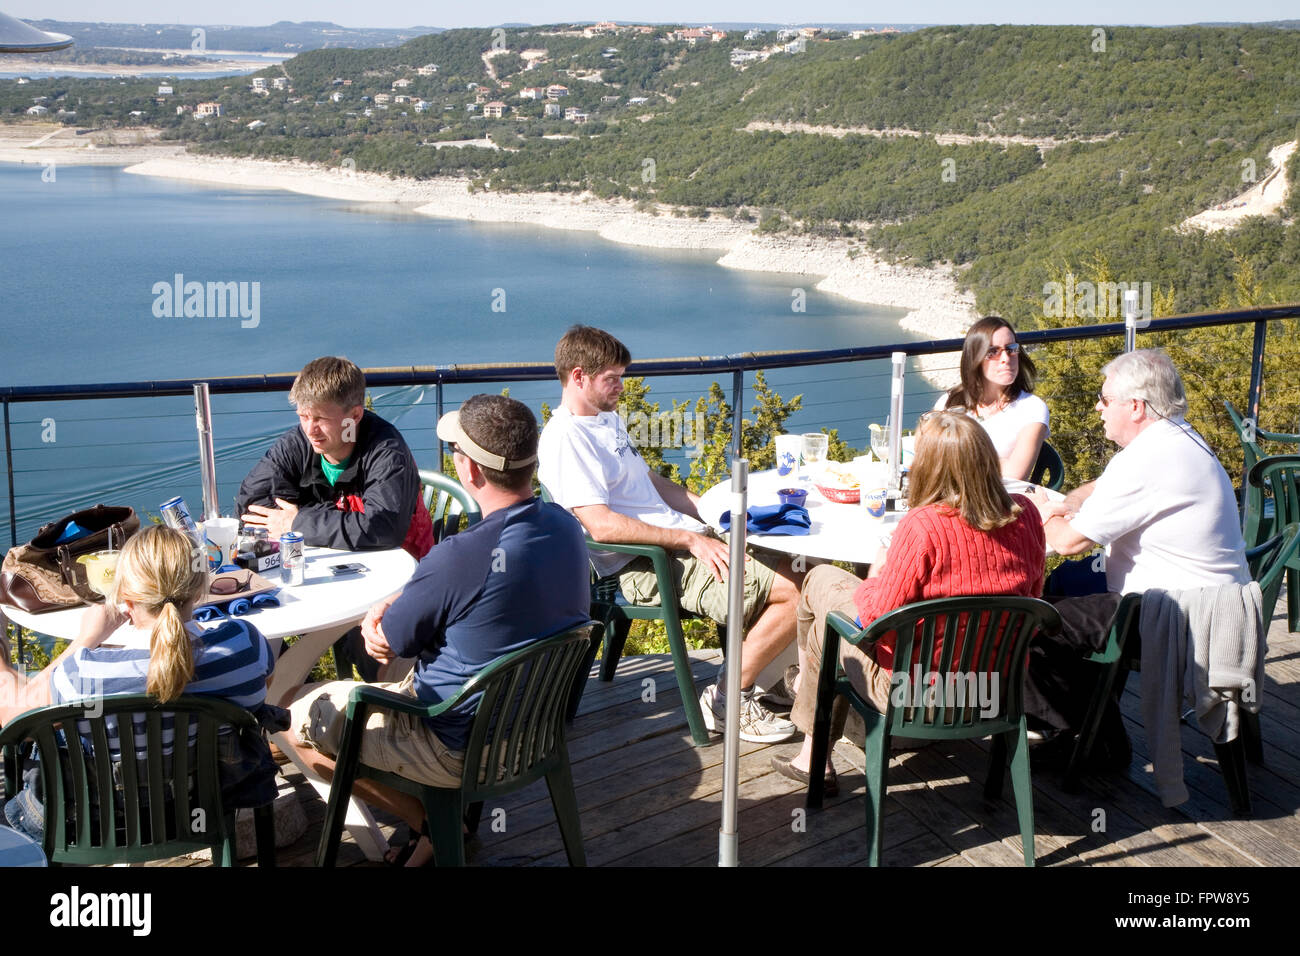 Perched Among The Pines Above Lake Travis, The Oasis Is A Popular Spot For  Alfresco